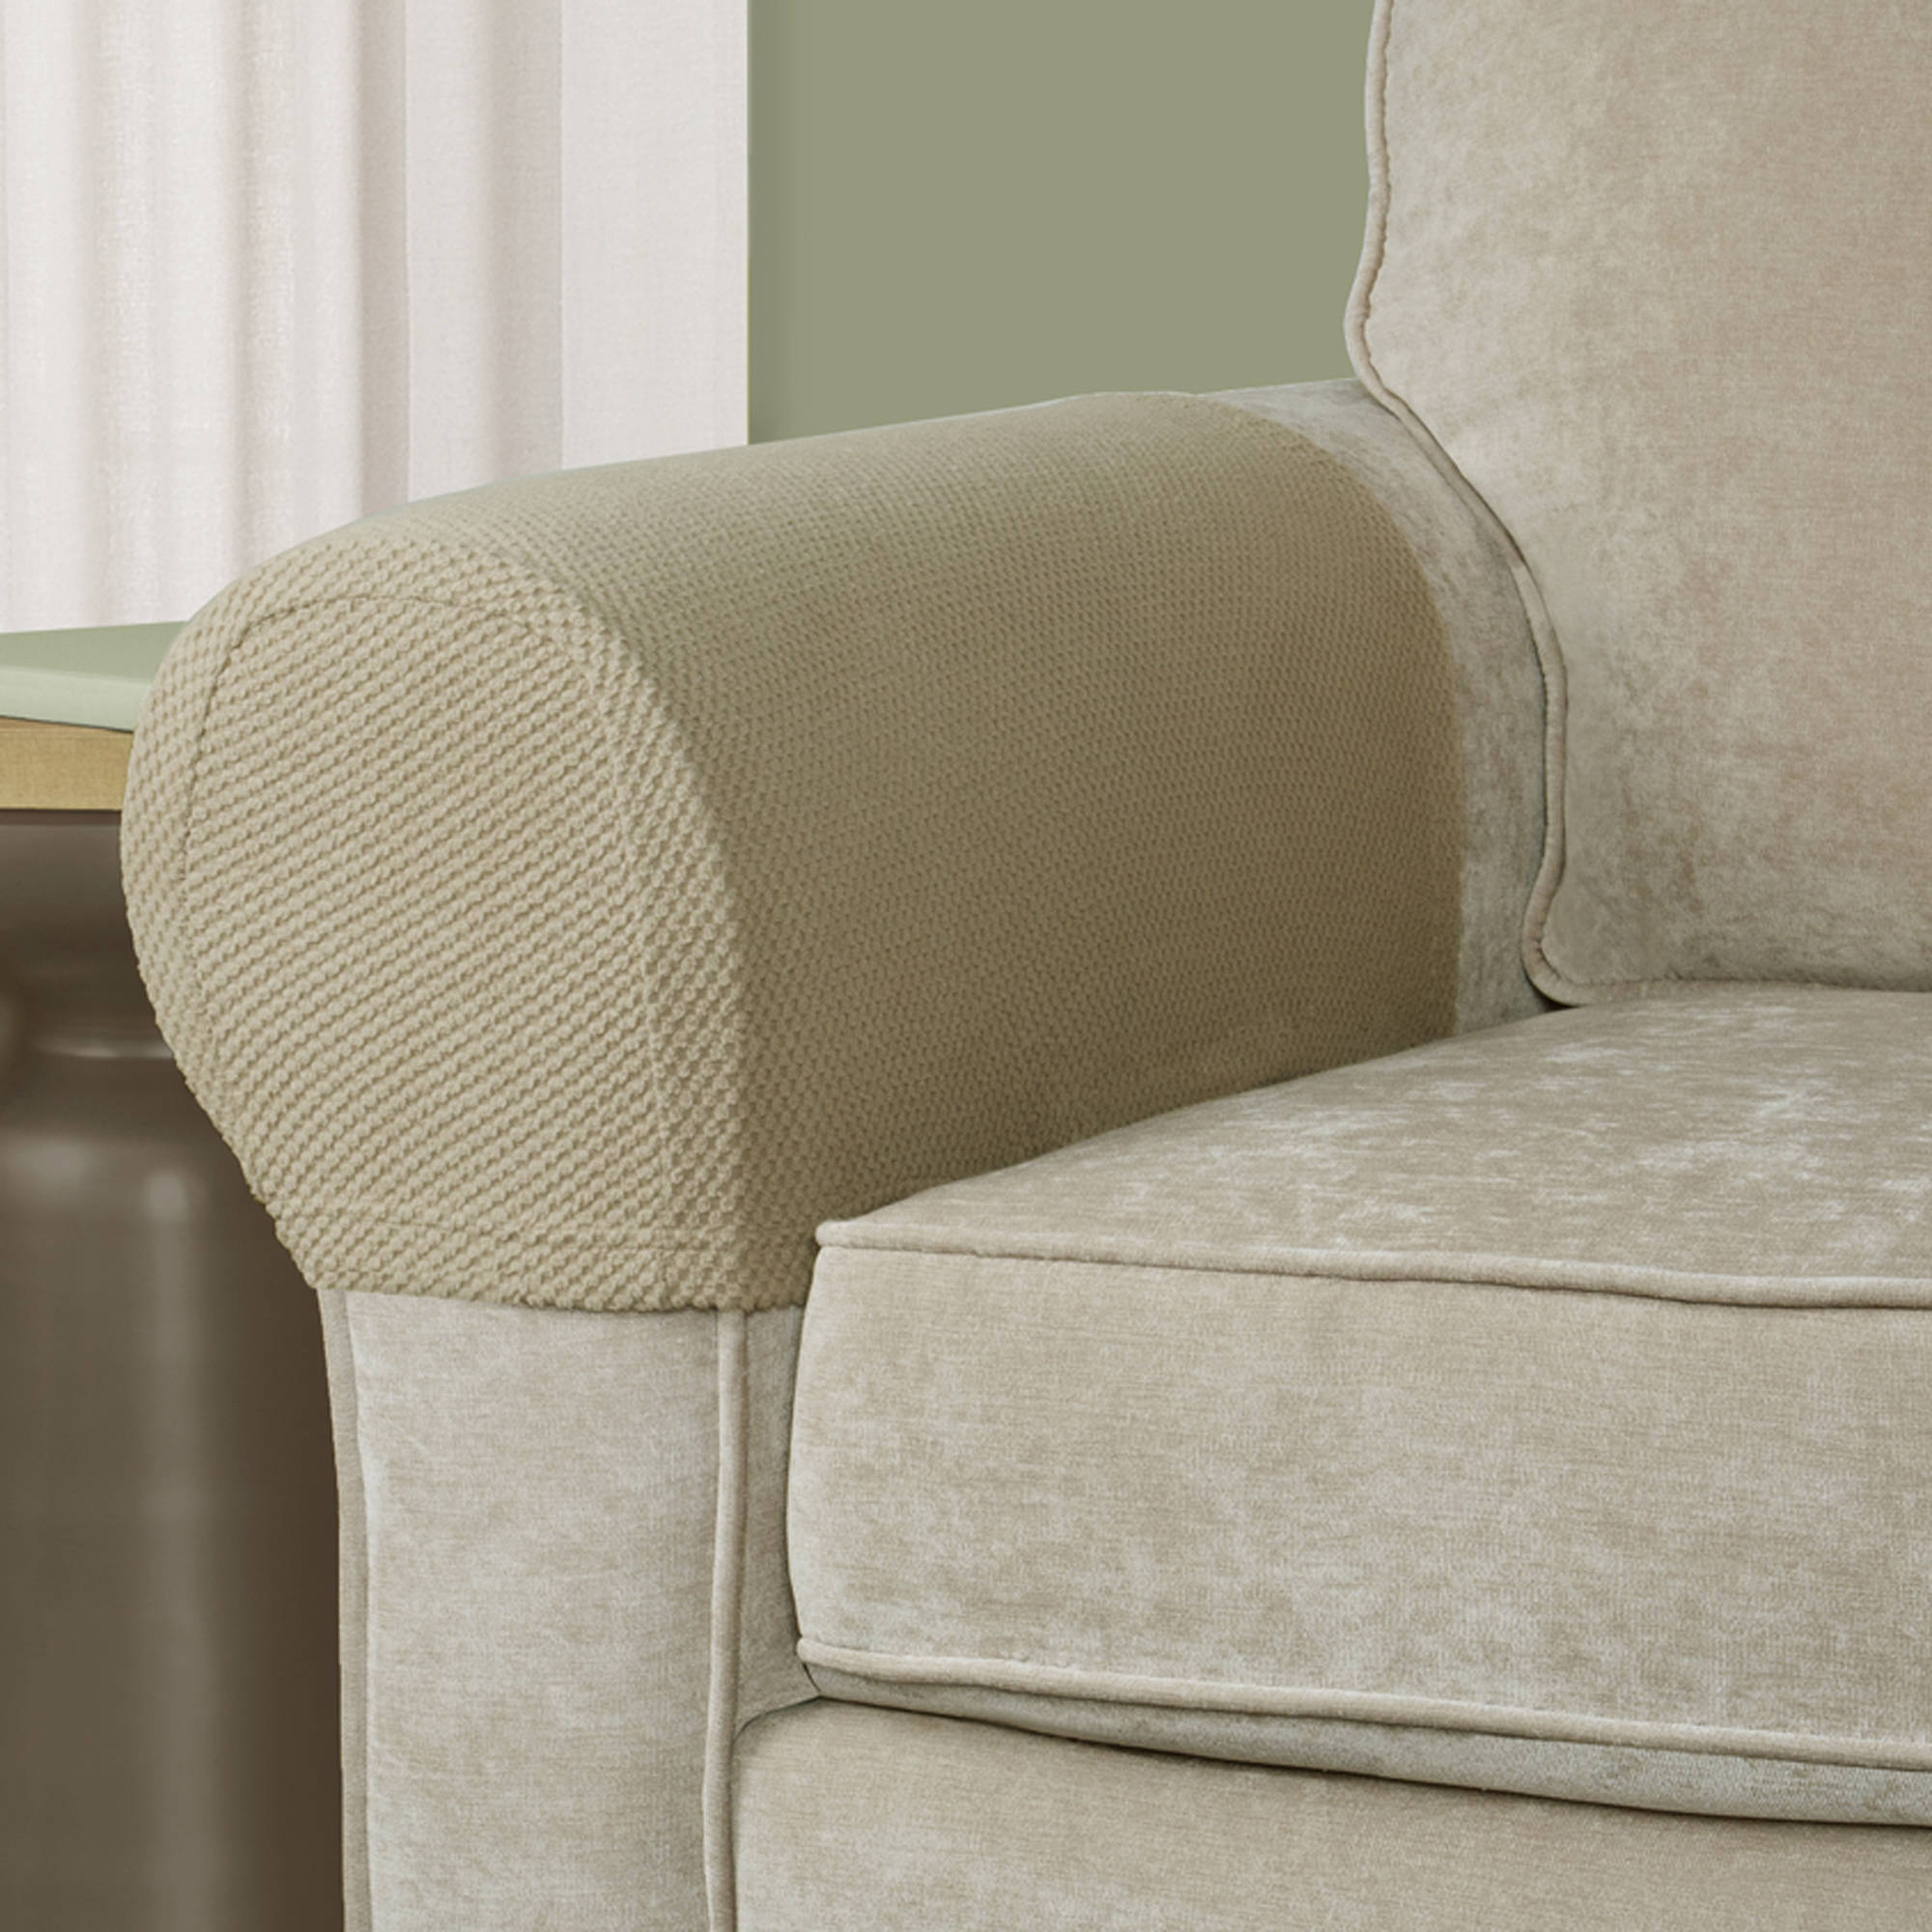 Mainstays Pixel Stretch Fabric Furniture Armrest Covers Walmart